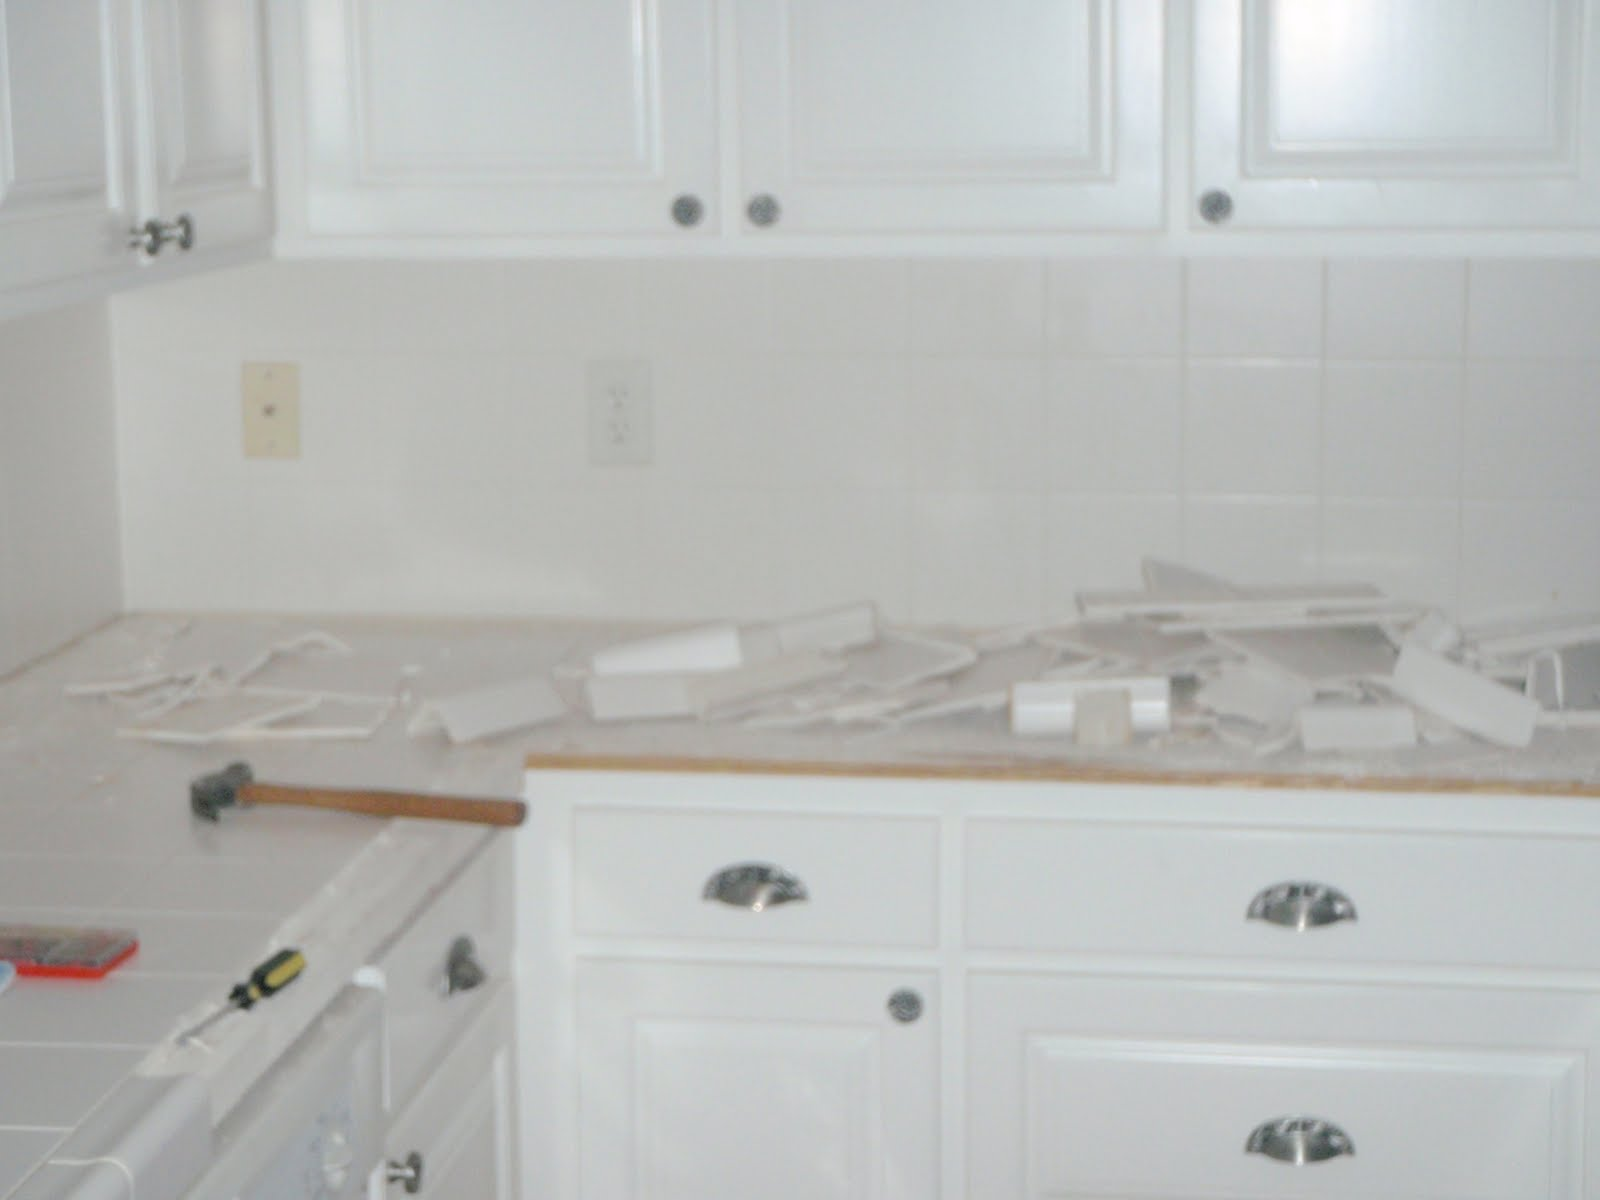 The Curious Life of the Campbells: Kitchen Updating / White Tile=BAD